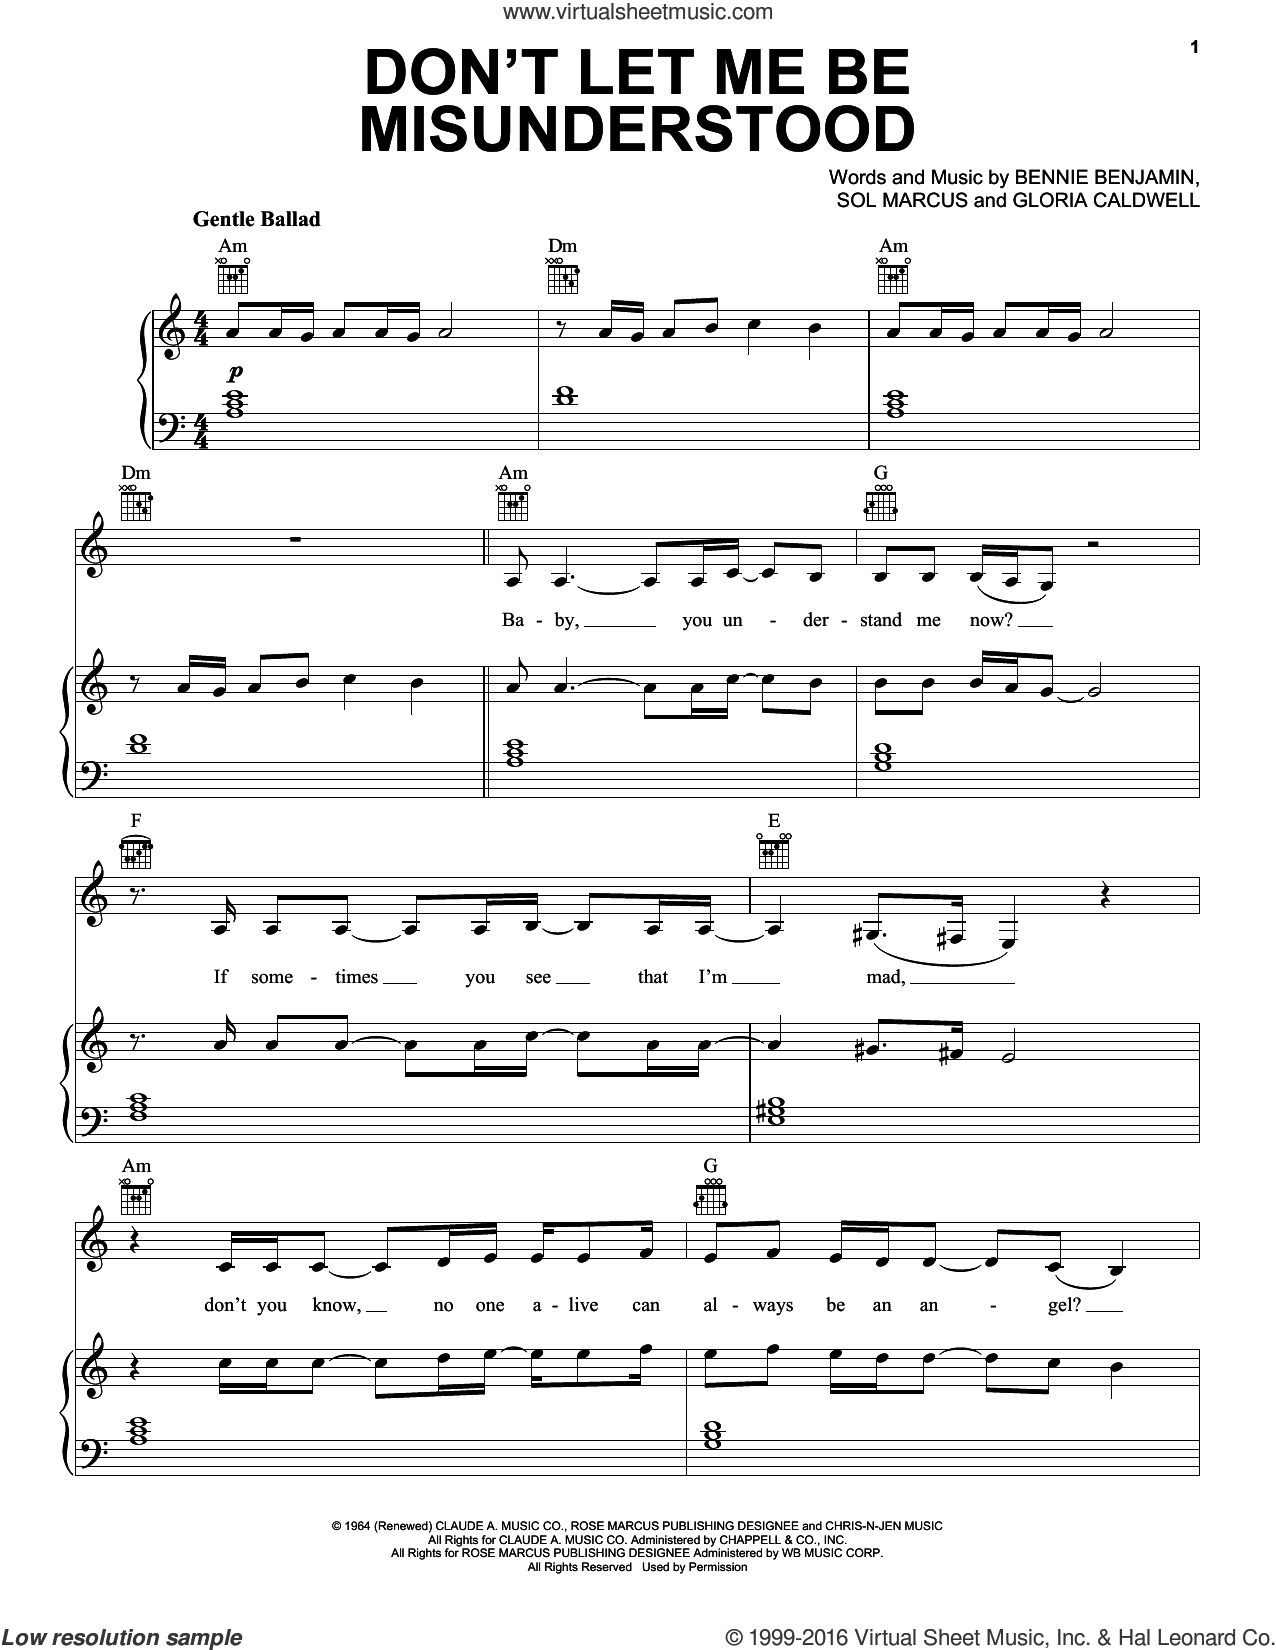 Don't Let Me Be Misunderstood sheet music for voice, piano or guitar by Lana Del Rey, The Animals, Bennie Benjamin, Gloria Caldwell and Sol Marcus, intermediate skill level